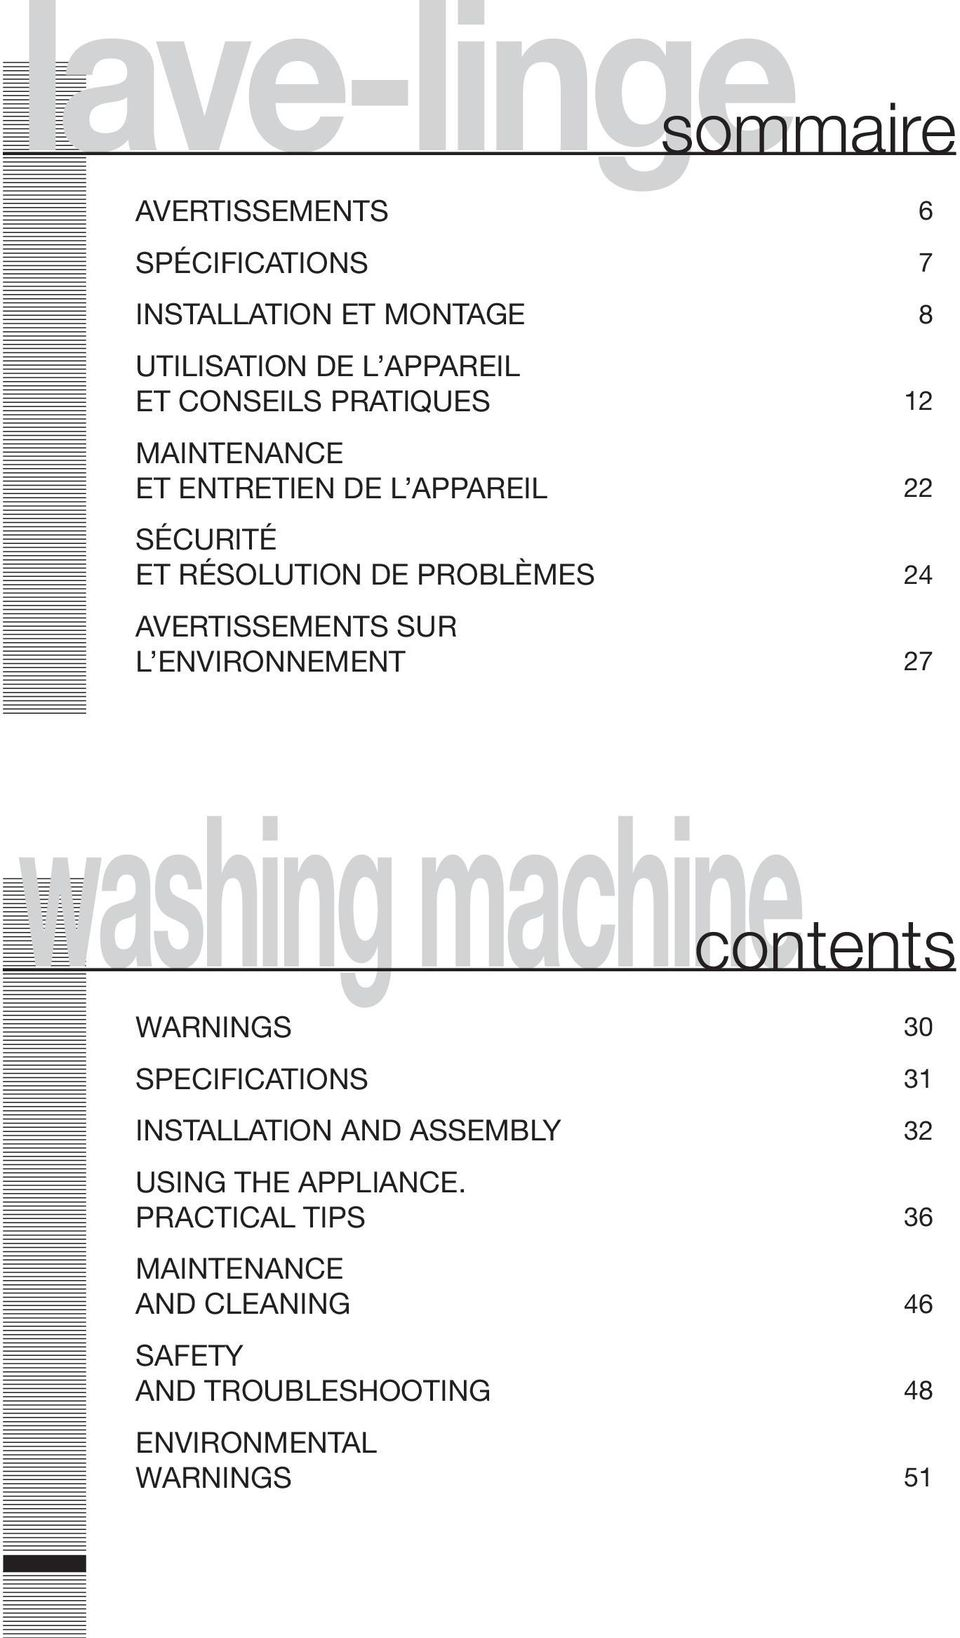 ENVIRONNEMENT 6 7 8 12 22 24 27 washing machine contents WARNINGS SPECIFICATIONS INSTALLATION AND ASSEMBLY USING